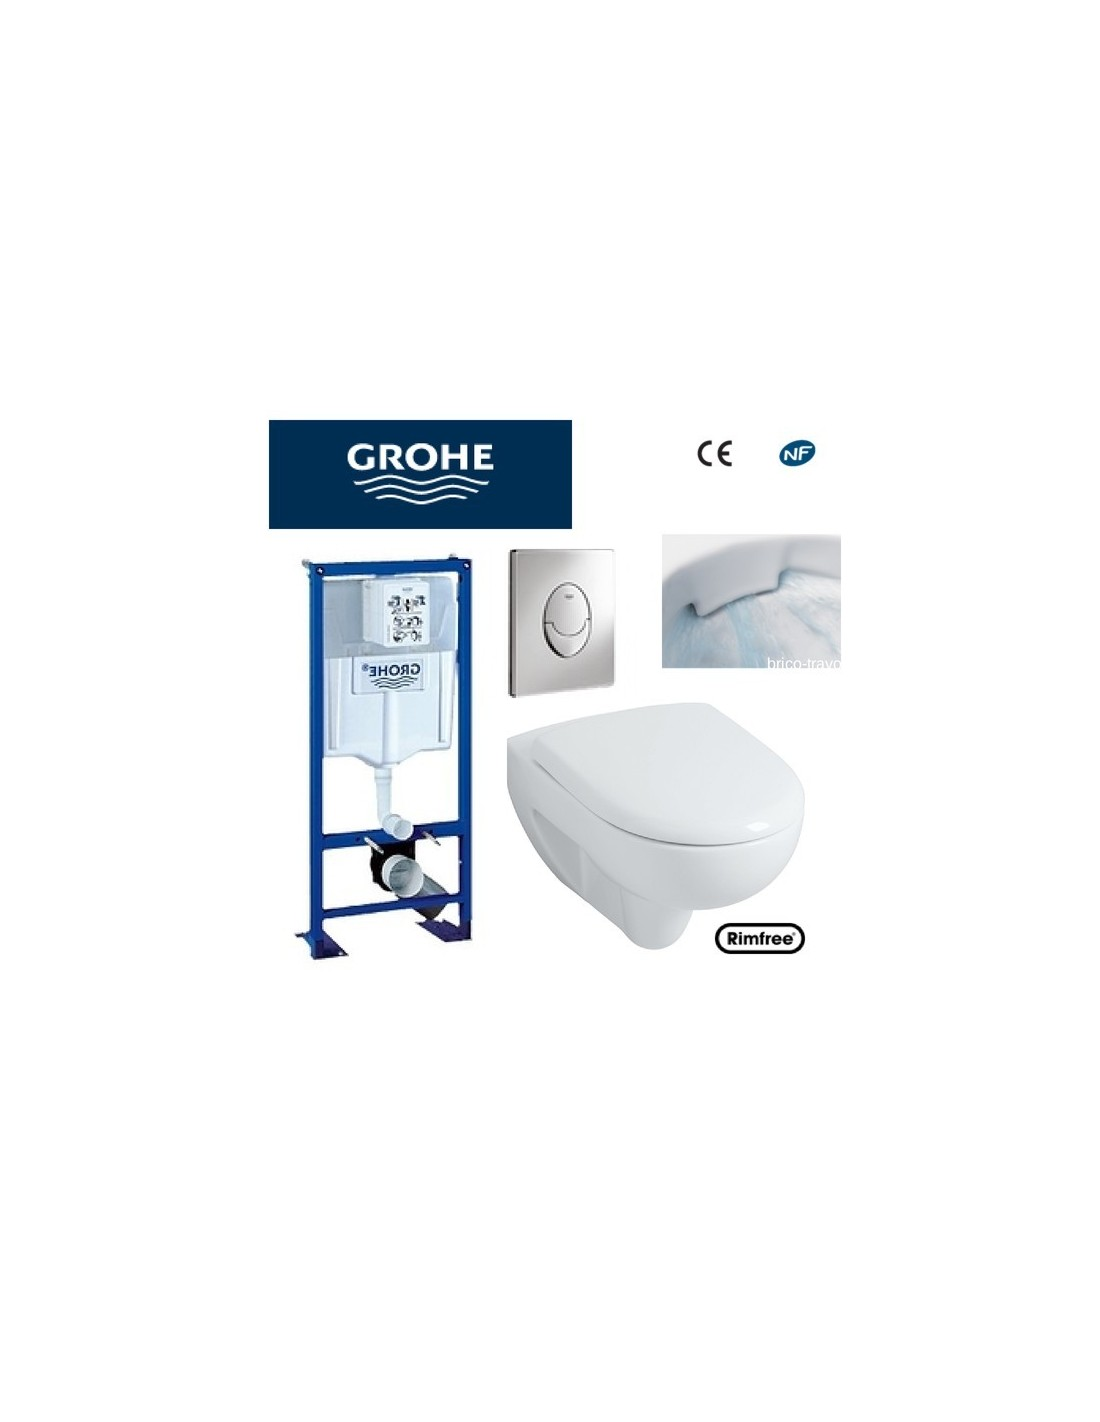 wc suspendu grohe plaque grise rimfree. Black Bedroom Furniture Sets. Home Design Ideas